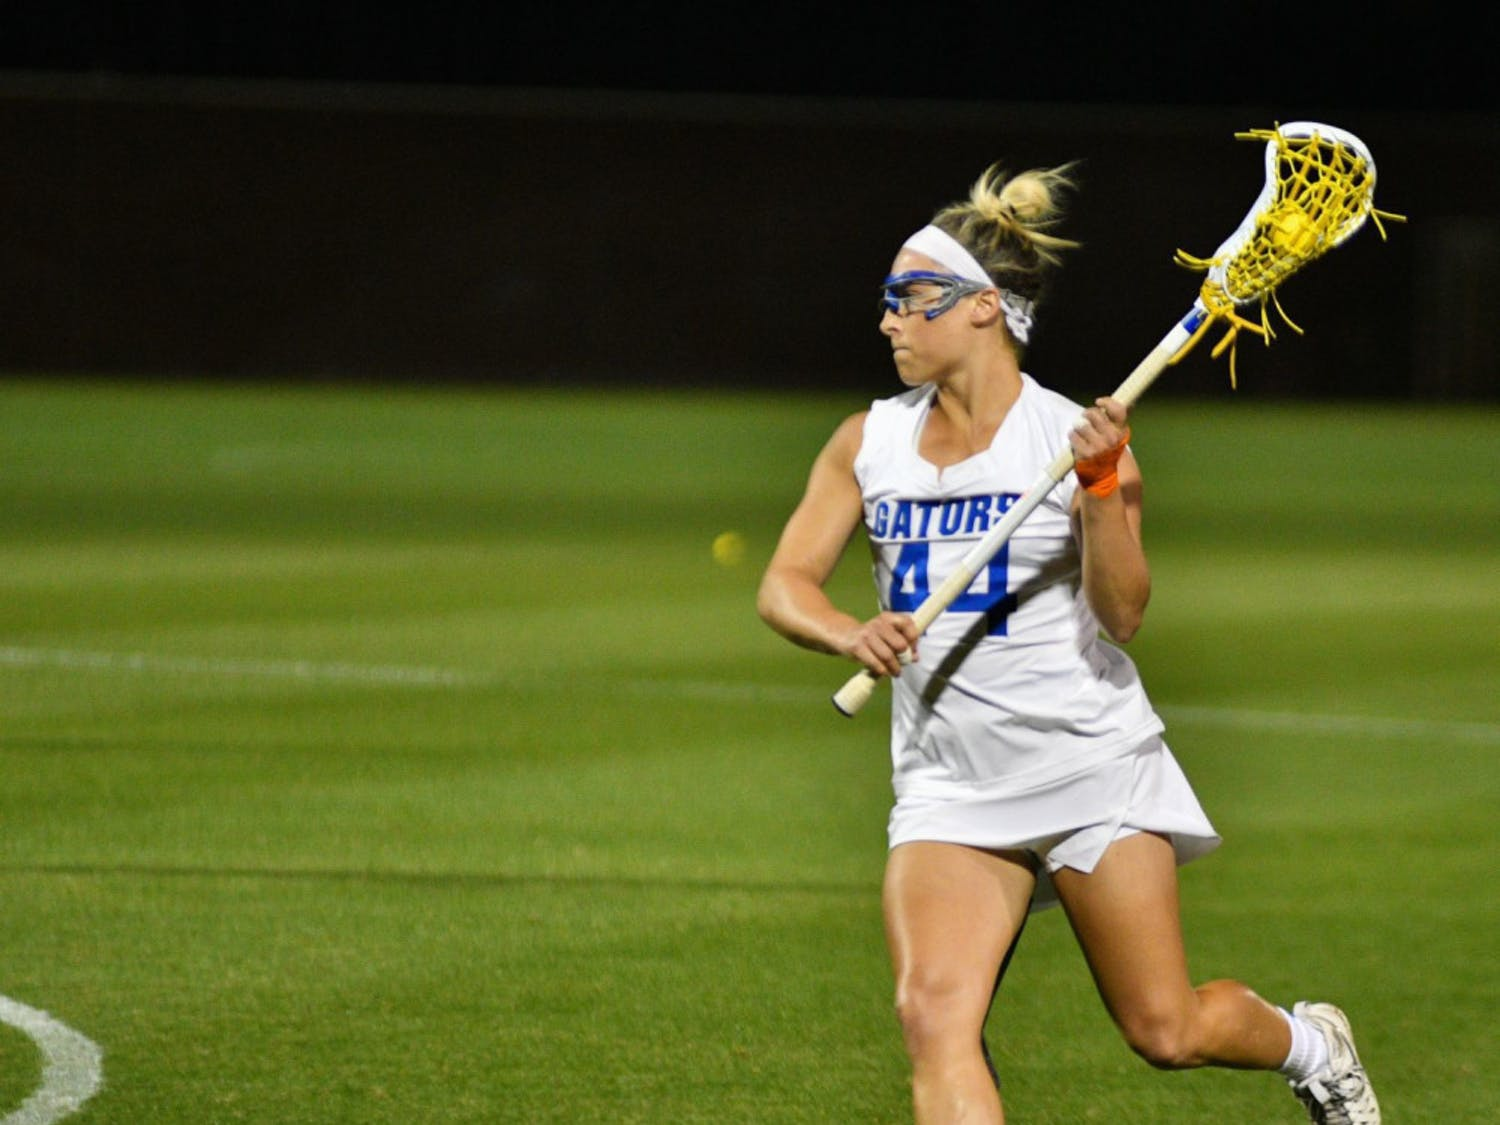 Sydney Pirreca (pictured),Shannon Kavanagh and Lindsey Ronbeck accounted for nine of Florida's goals in its 13-11 loss to Princeton.